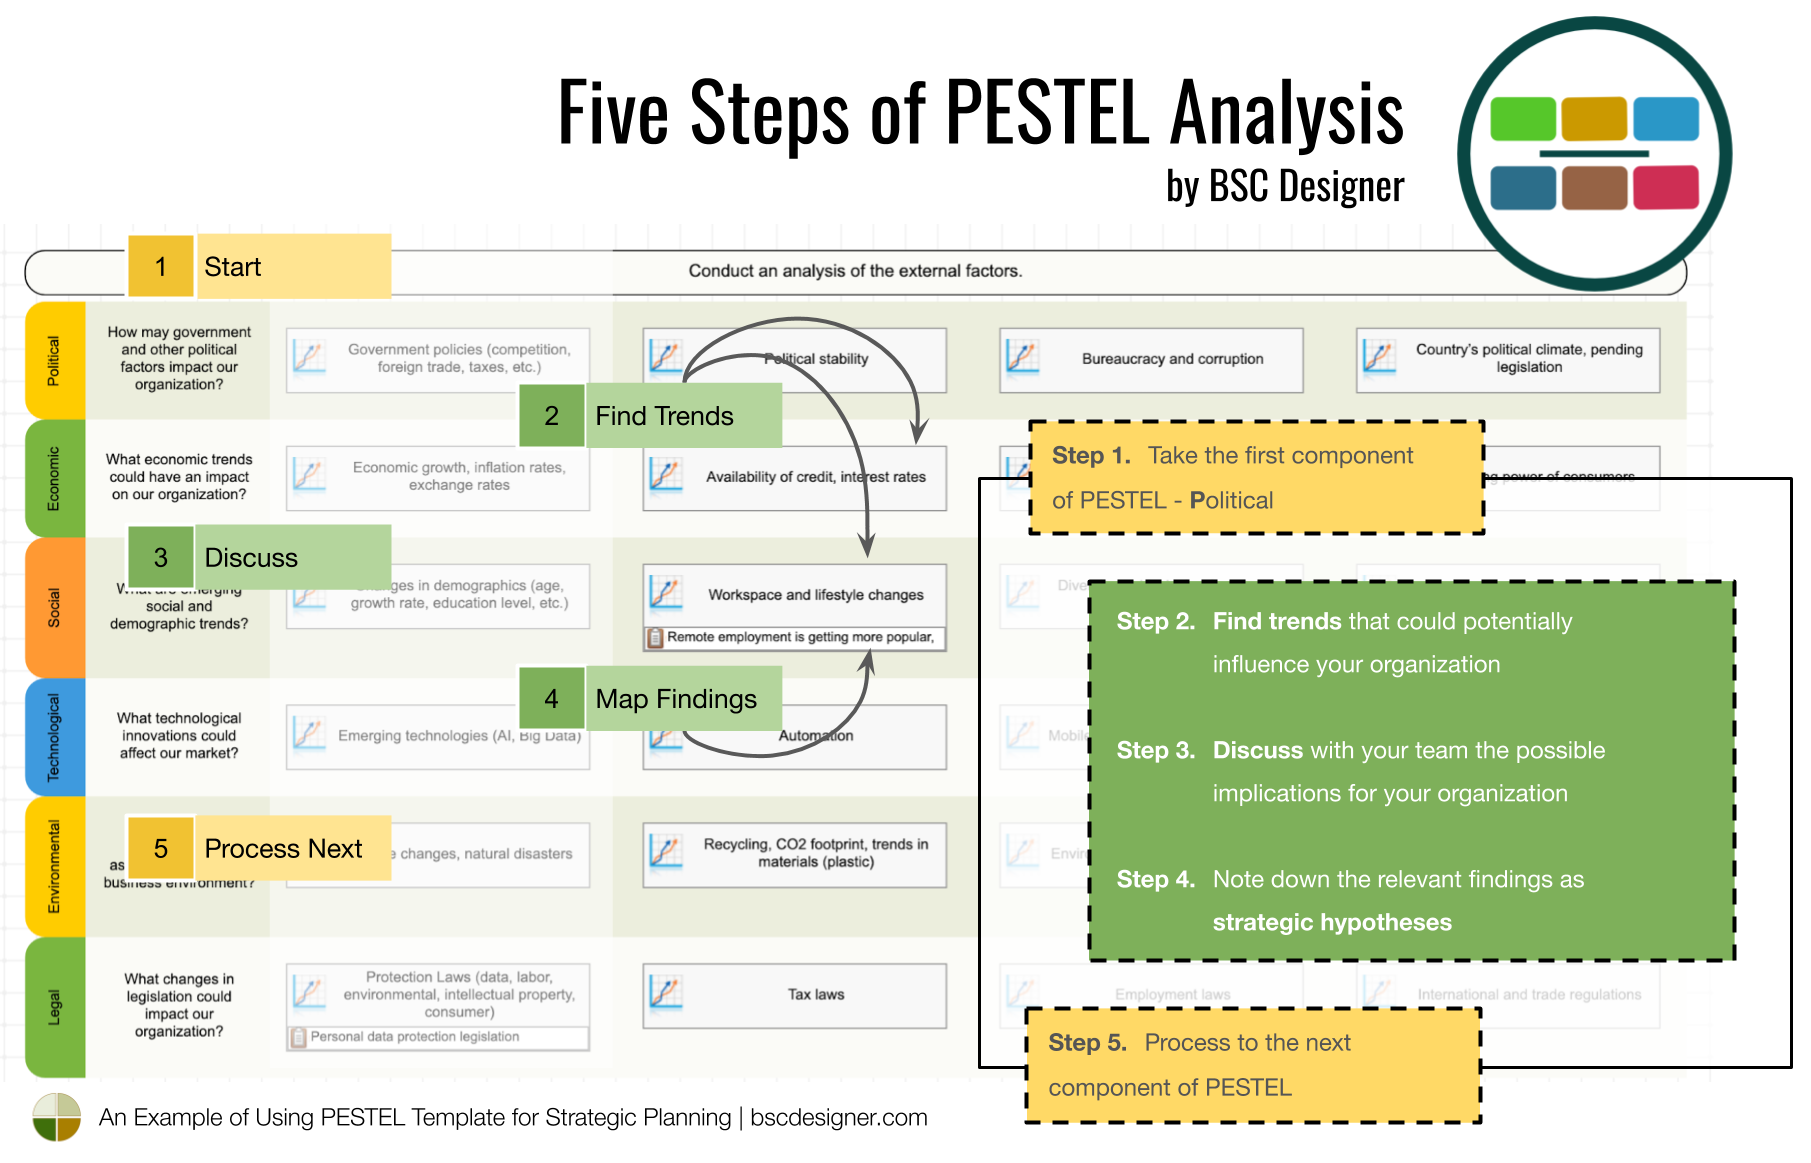 Five Steps of PESTEL Analysis